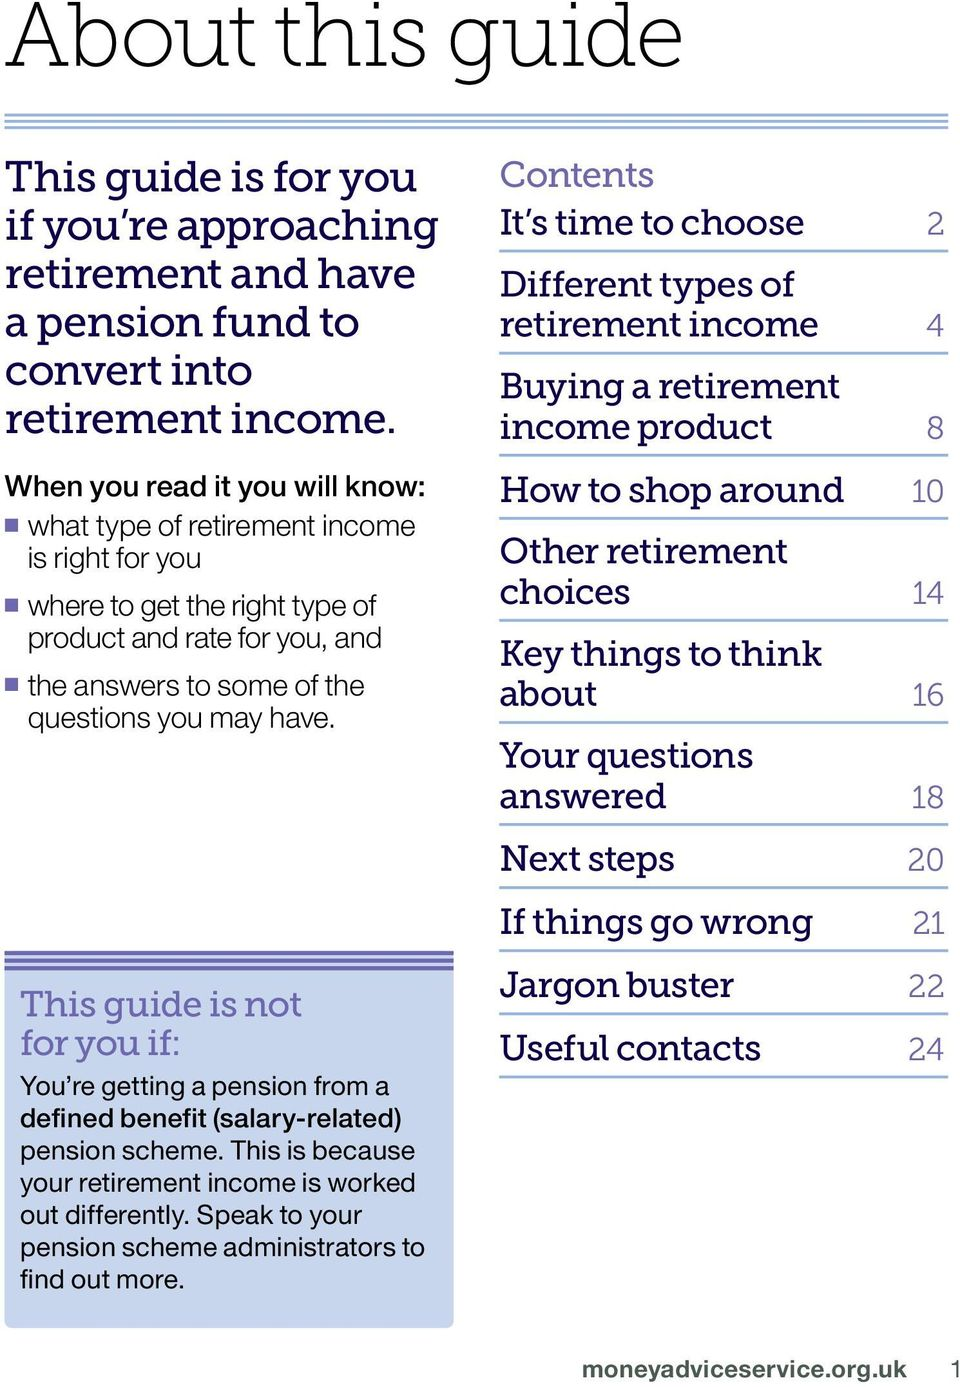 This guide is not for you if: You re getting a pension from a defined benefit (salary-related) pension scheme. This is because your retirement income is worked out differently.